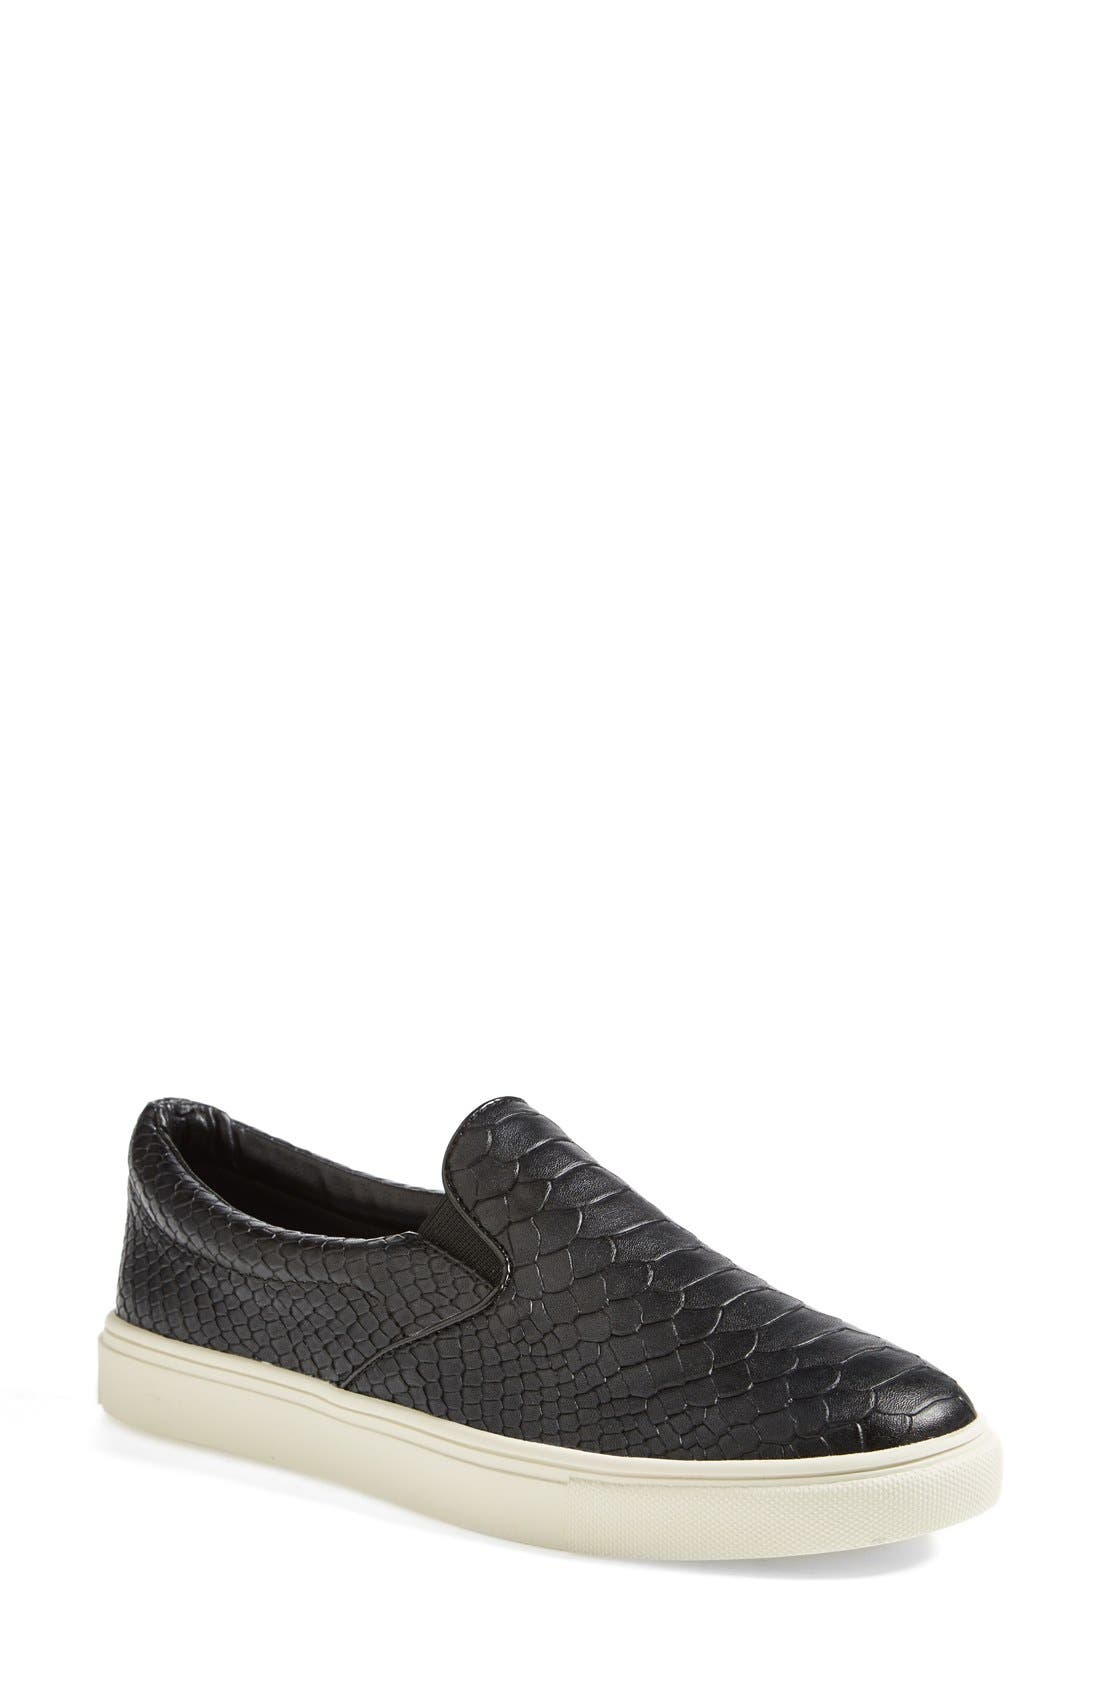 'Ecntrc-c' Snake-Embossed Slip-On Sneaker,                             Main thumbnail 1, color,